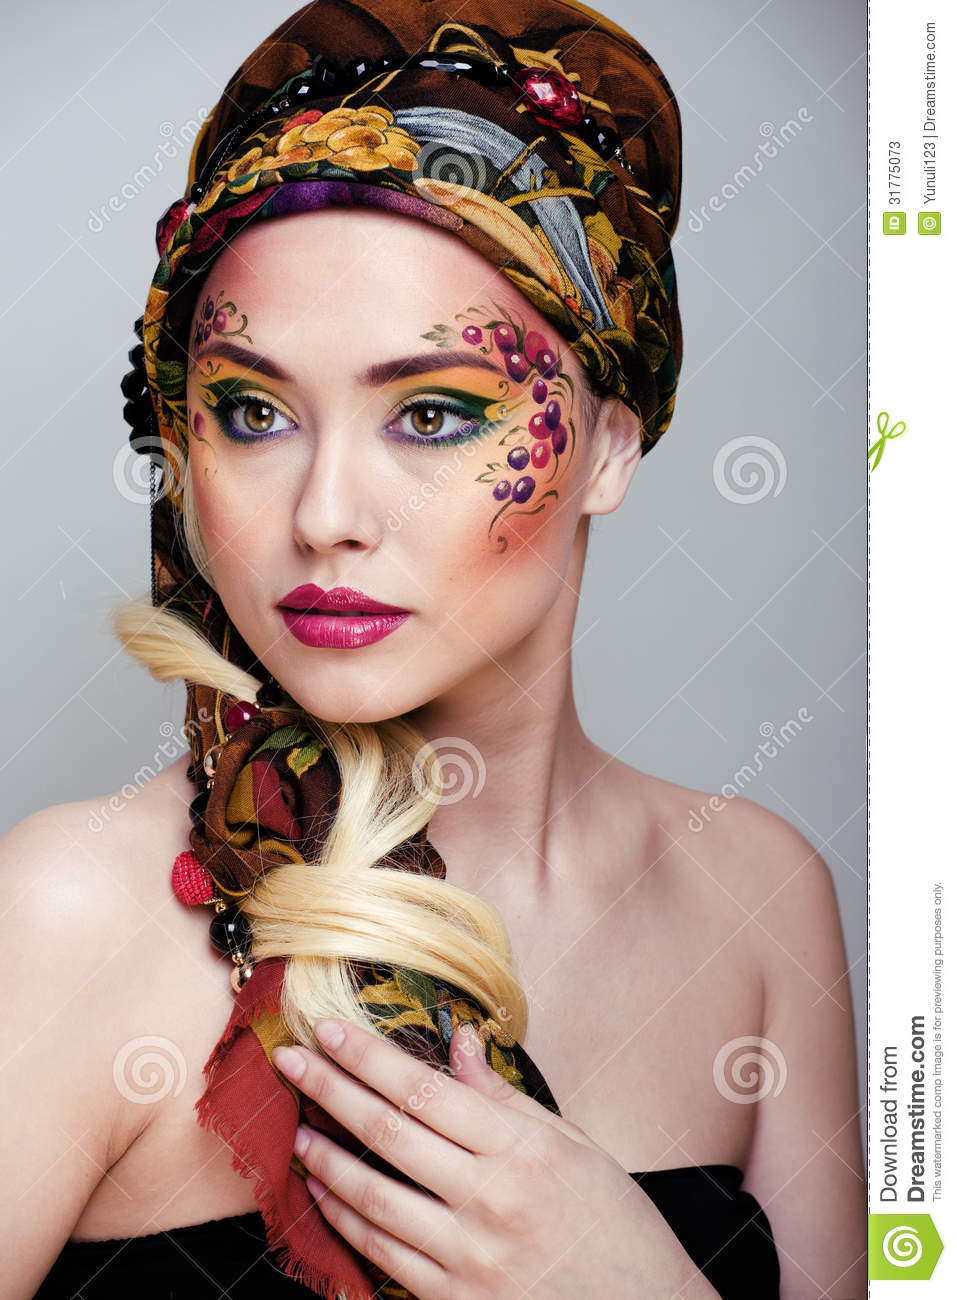 Portrait Of Beauty Woman With Face Art Stock Photos - Image: 31775073